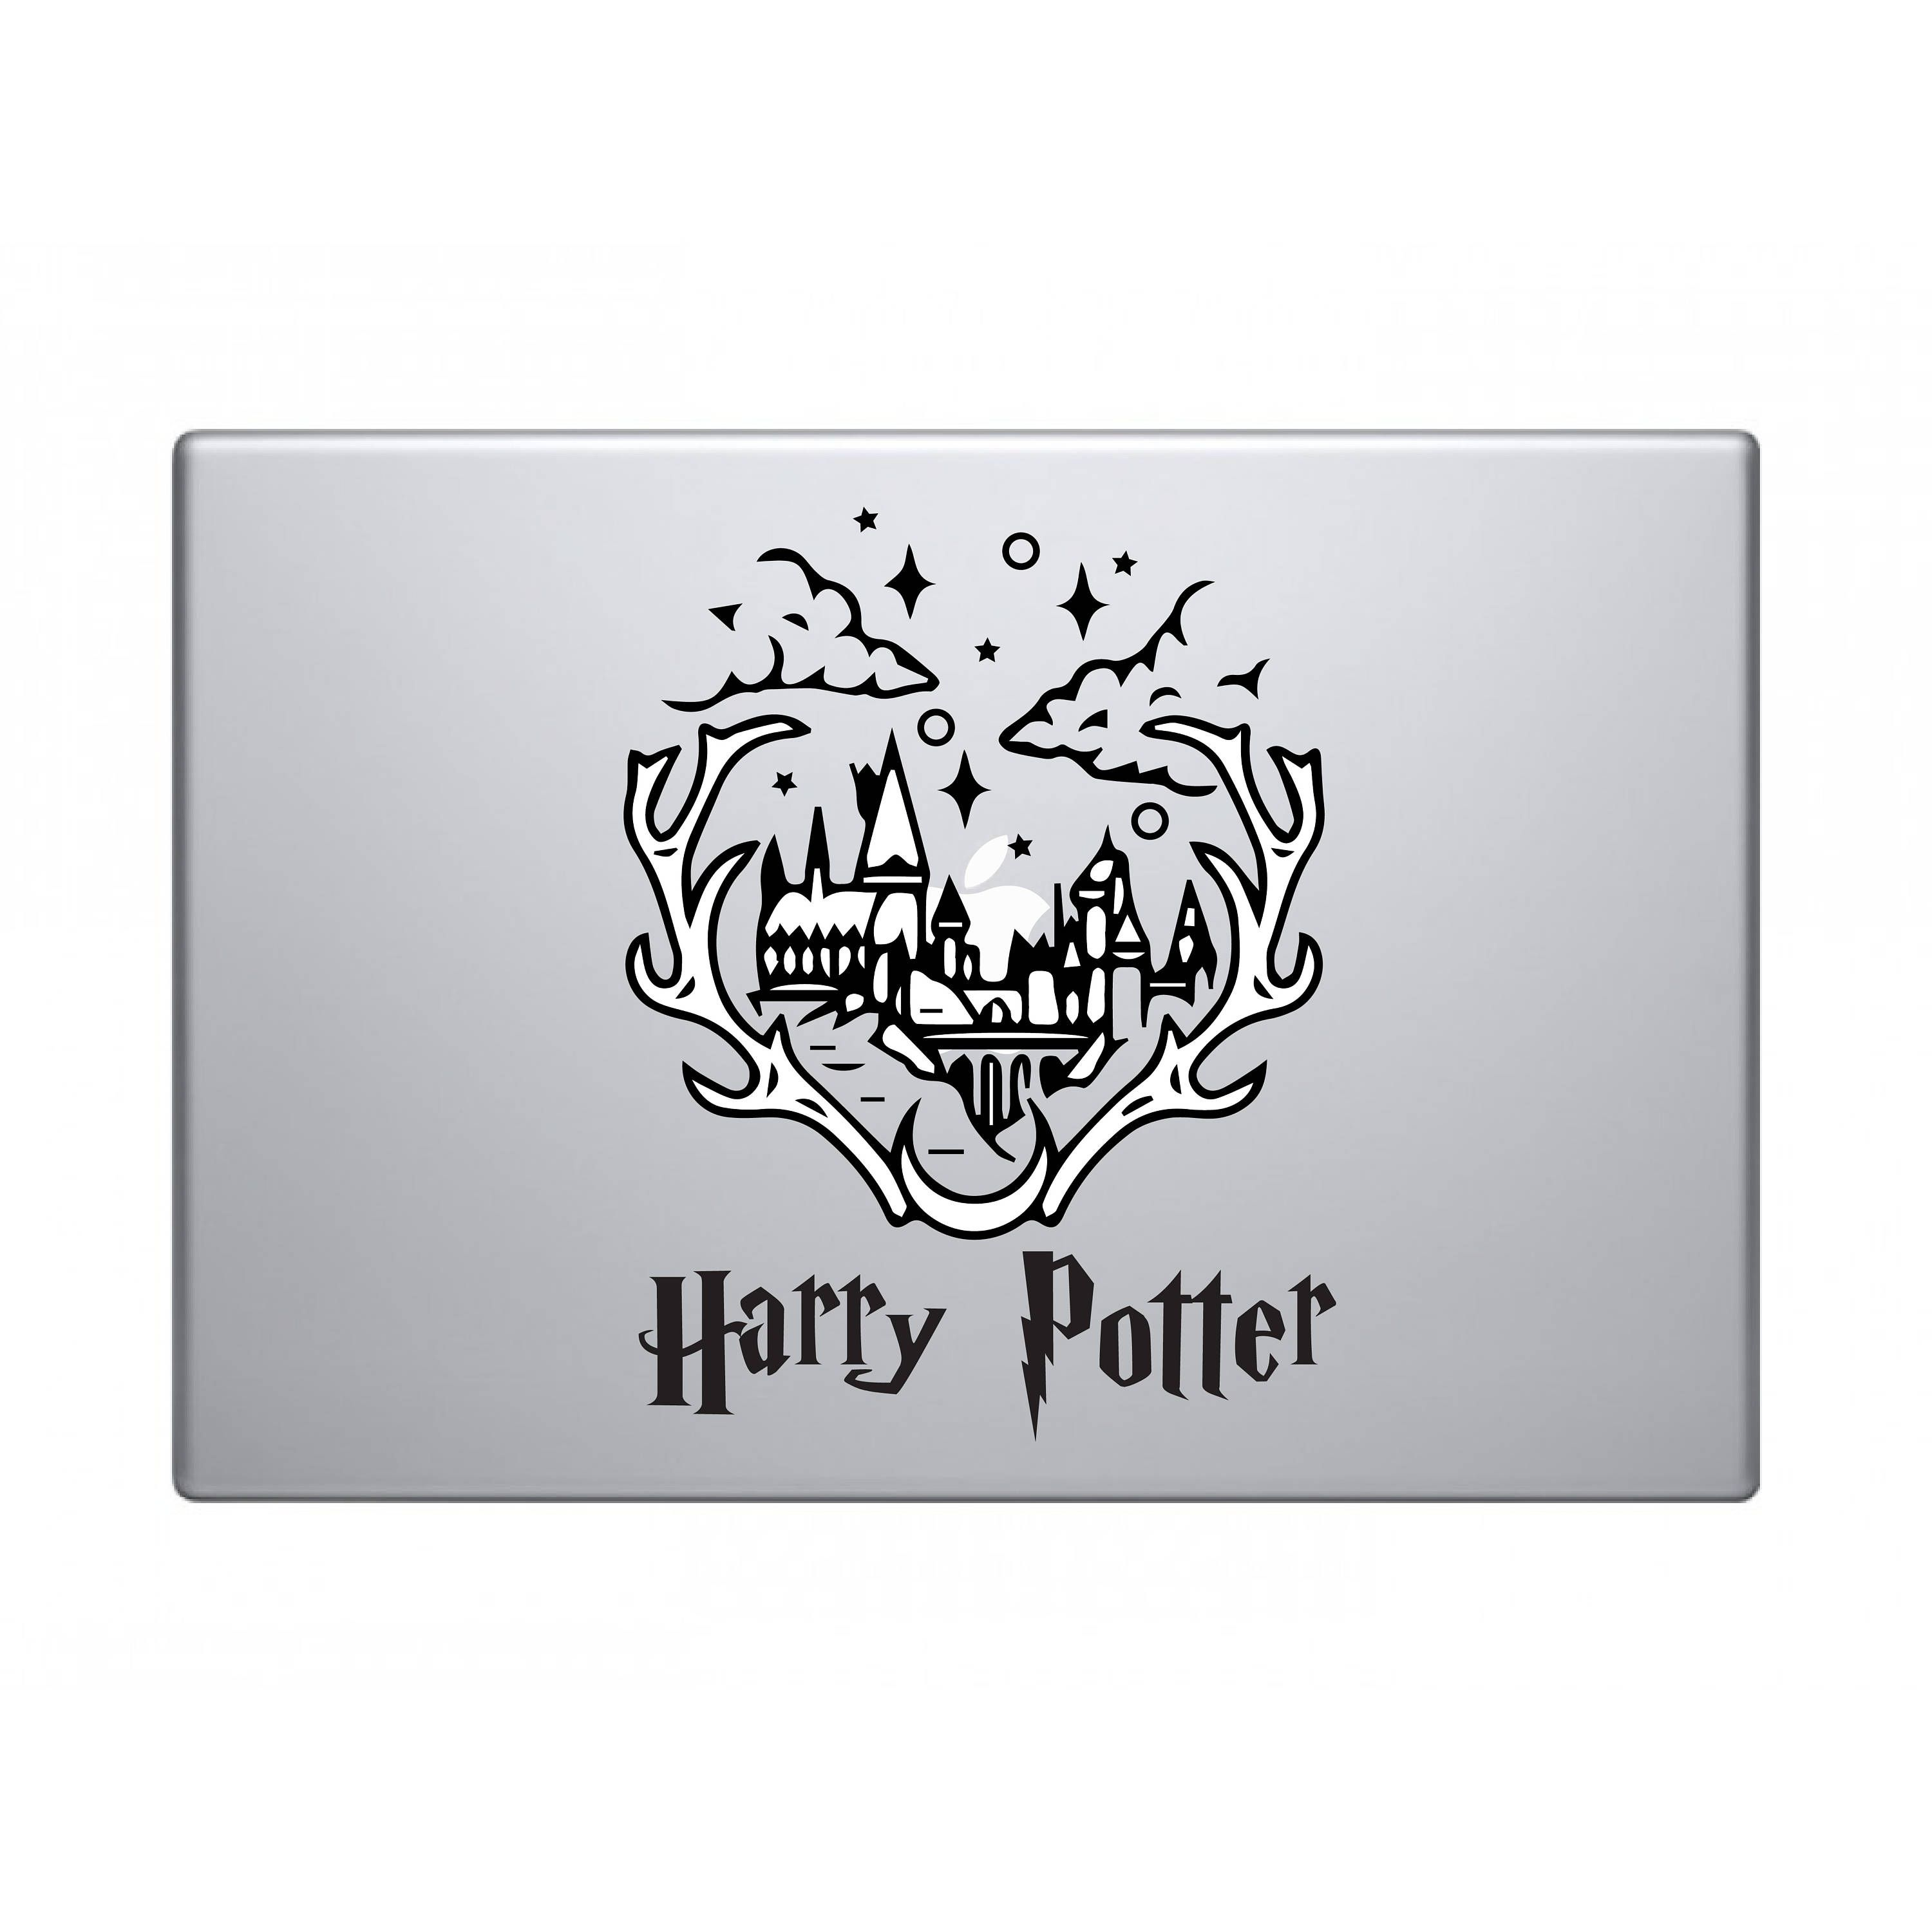 Excited To Share The Latest Addition To My Etsy Shop Harry Potter Deer Castle Hogwarts Decal Apple Macbook Imac S Macbook Decal Macbook Stickers Decals Ideas [ 3000 x 3000 Pixel ]